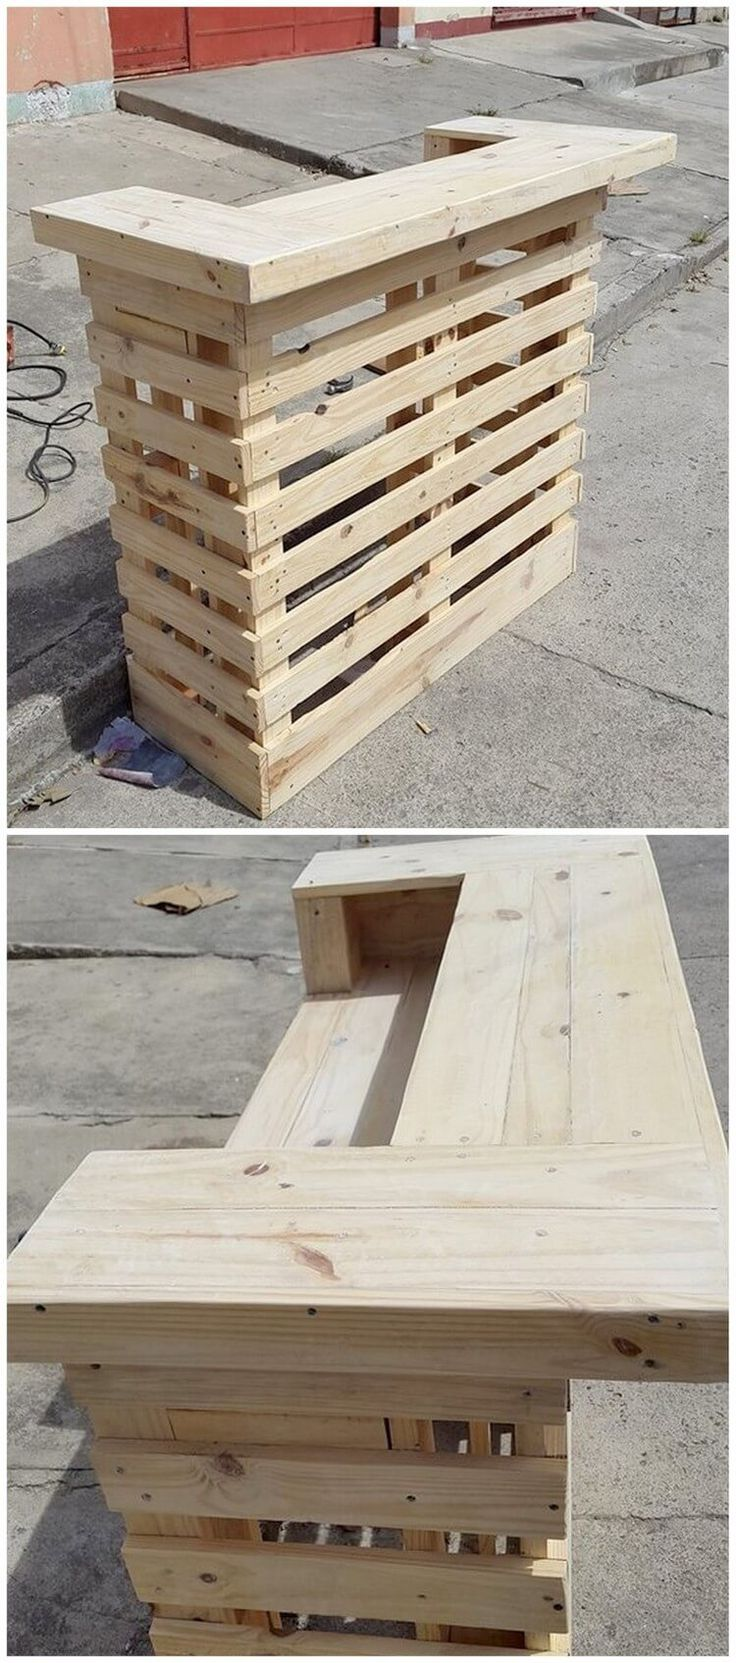 Cheap ideas to upcycle old wooden pallets wood pallet for Old wood pallets ideas